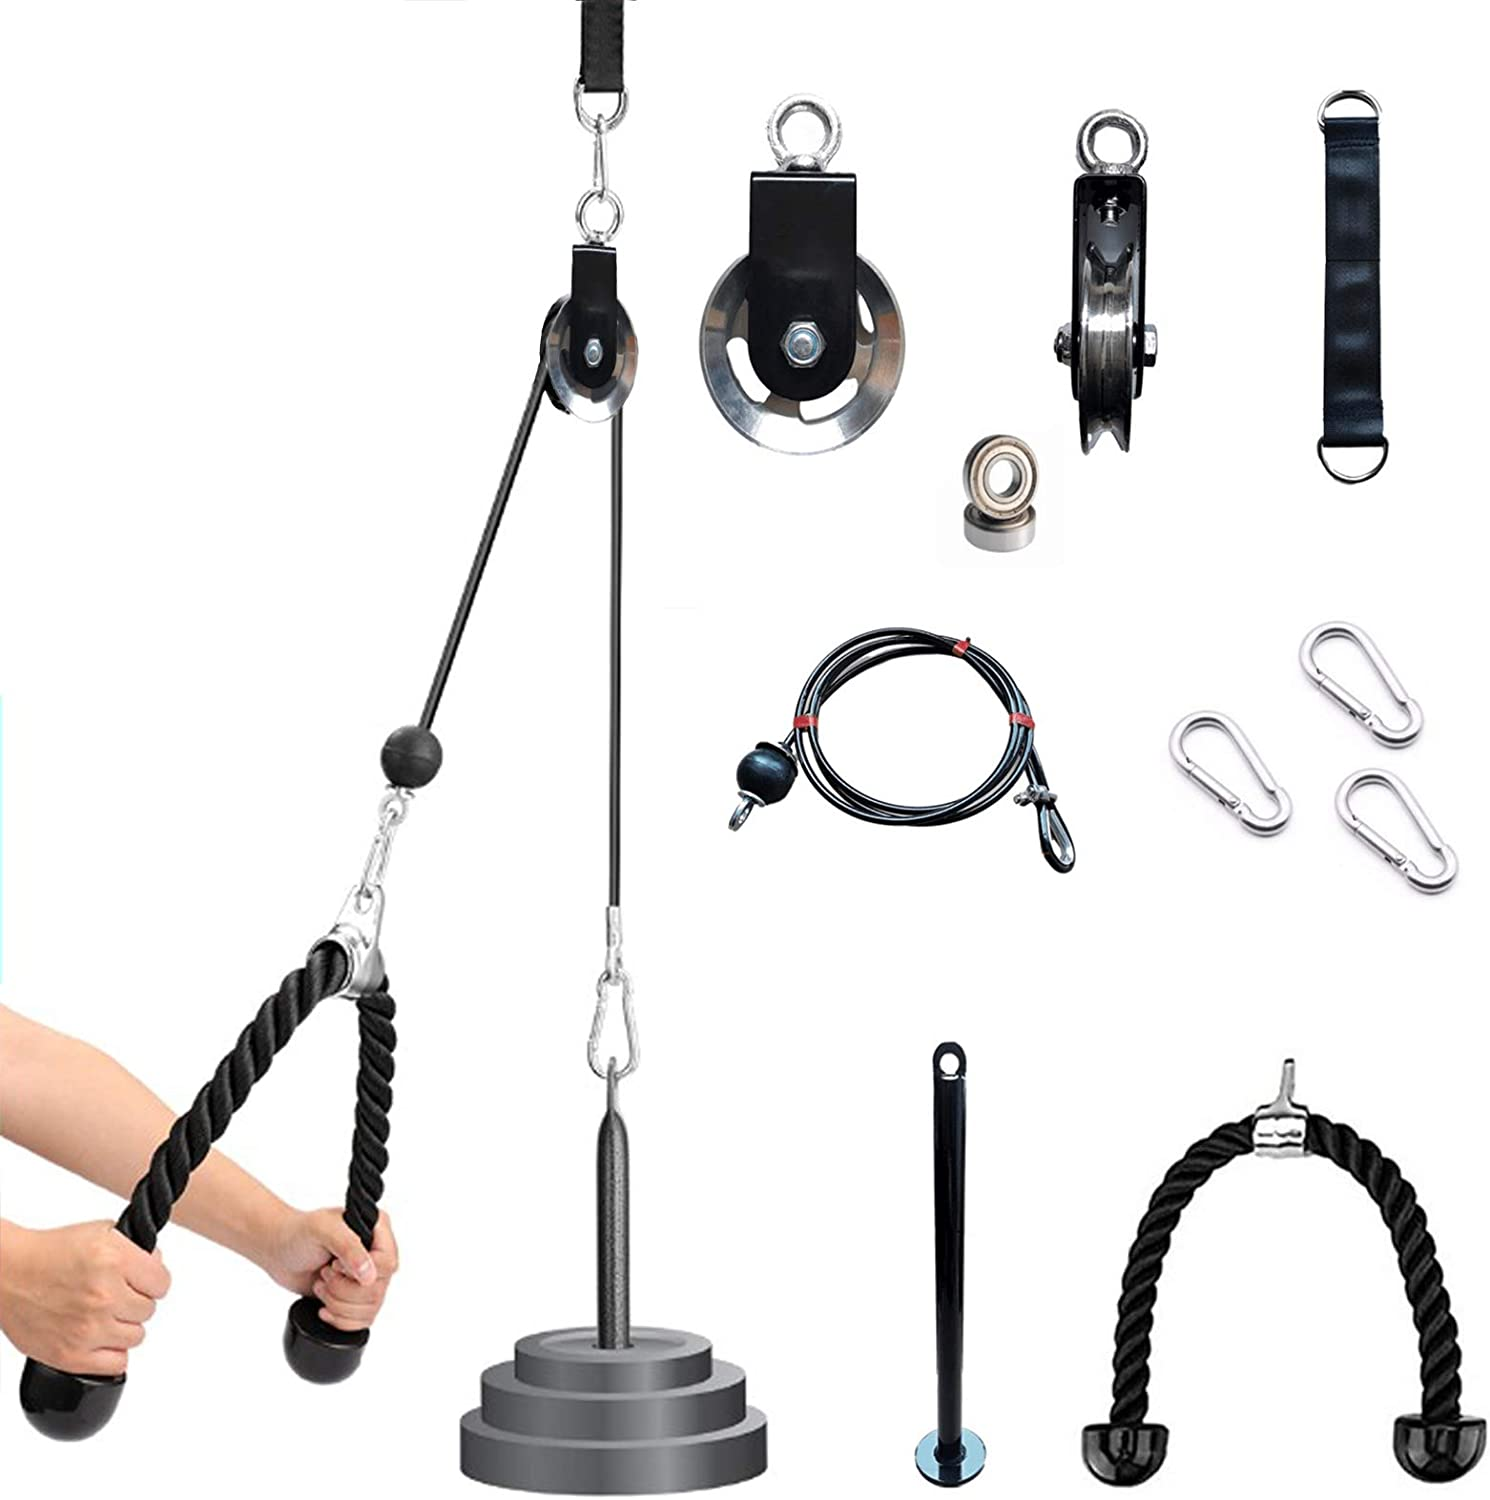 colllco Pulley Cable System Lifting Triceps Rope Fitness DIY Loading Machine Workout LAT Pulldown Home Gym Sport Accessories